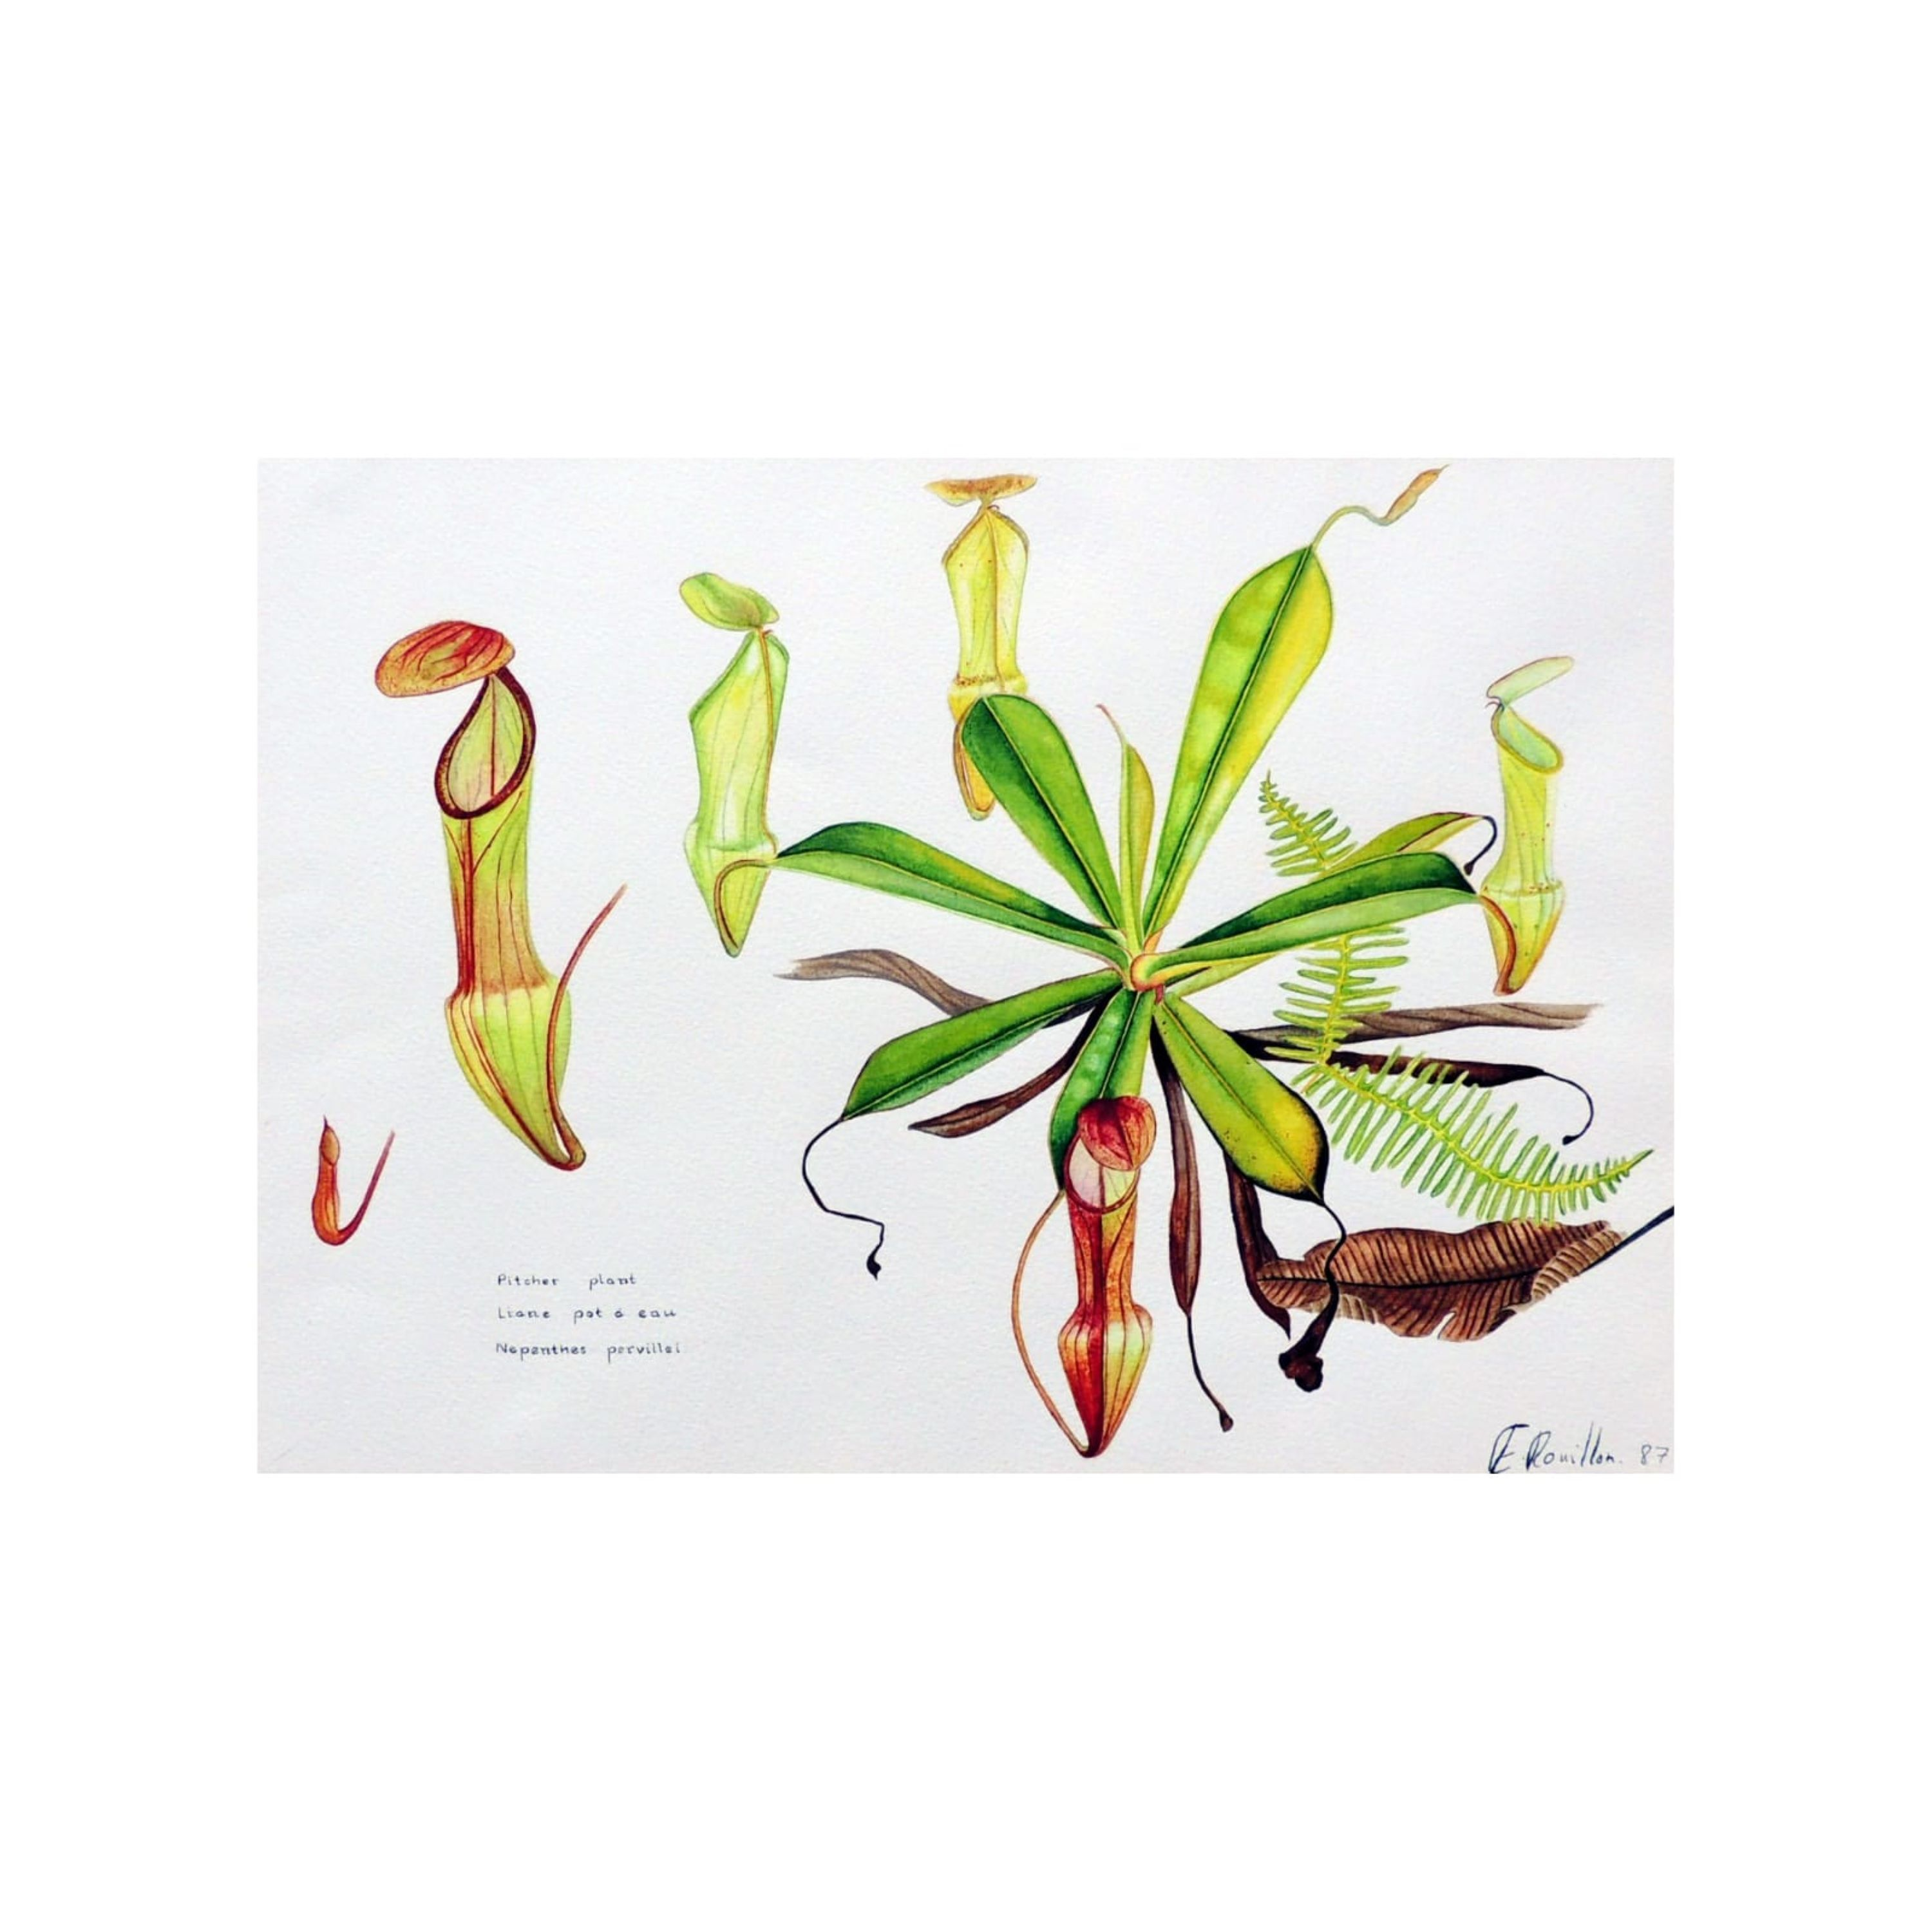 Pitcher Plant, Nepenthes Pervillei